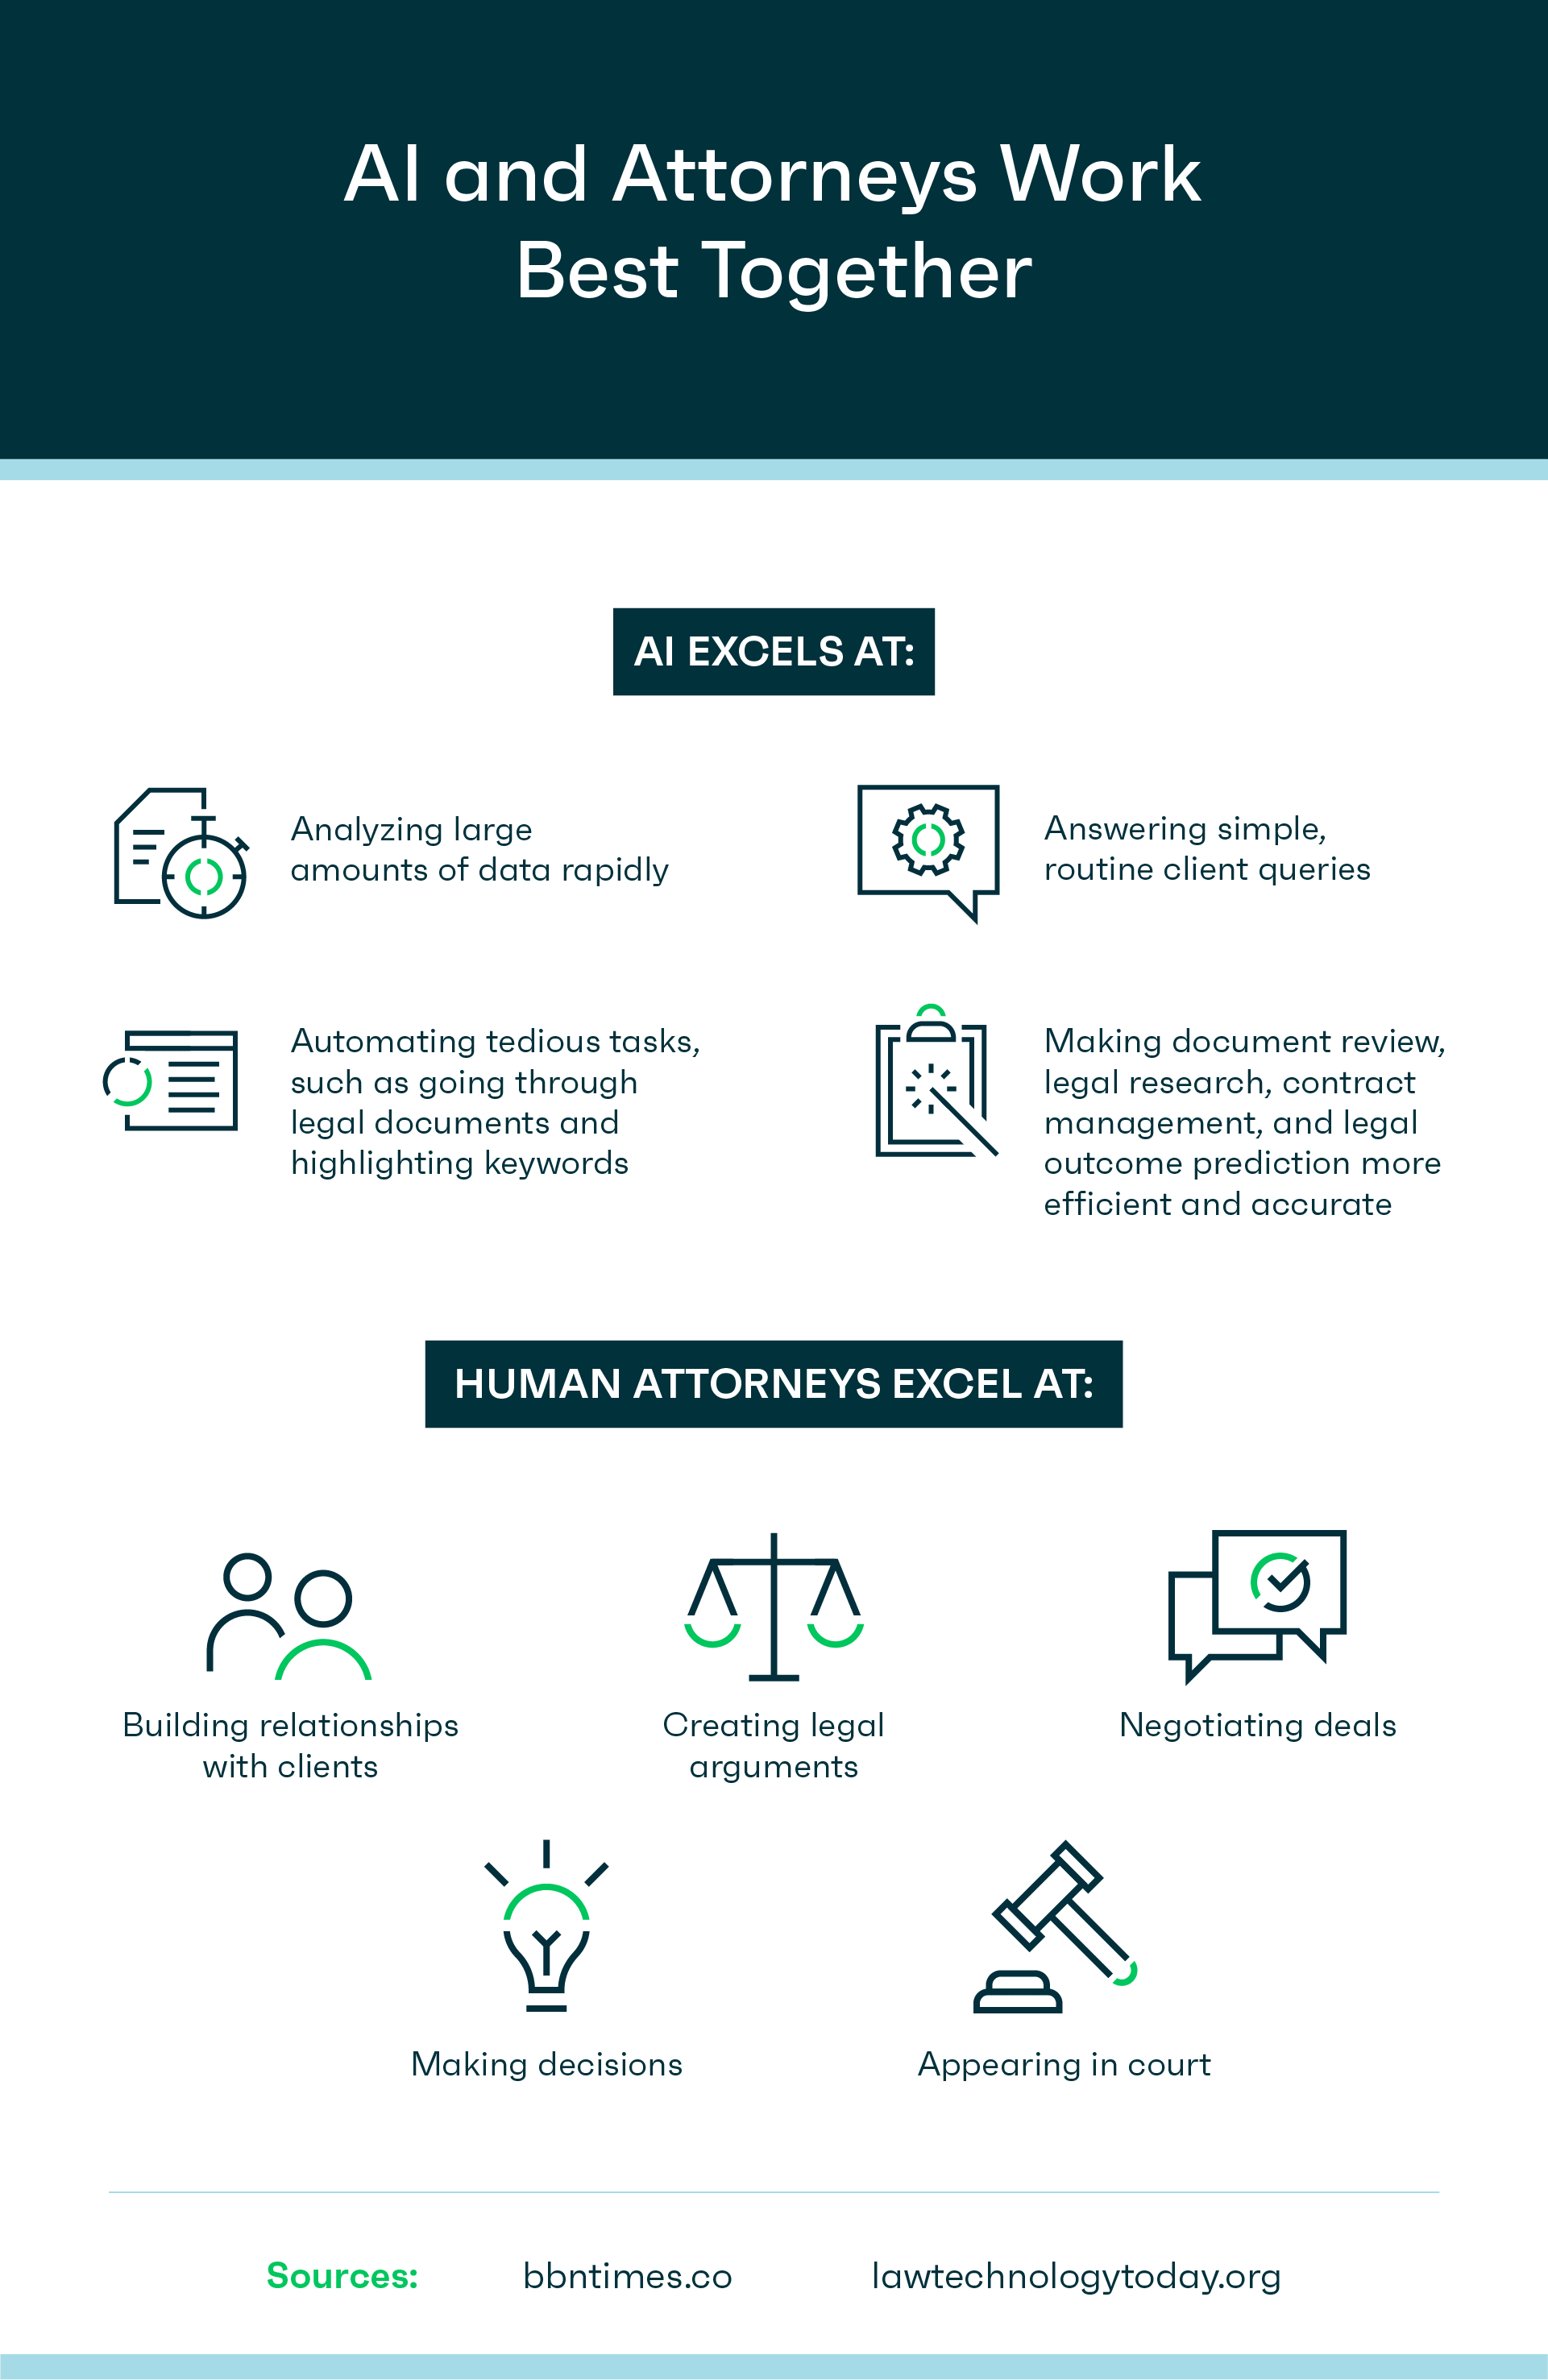 ai-lawyers-working-best-together